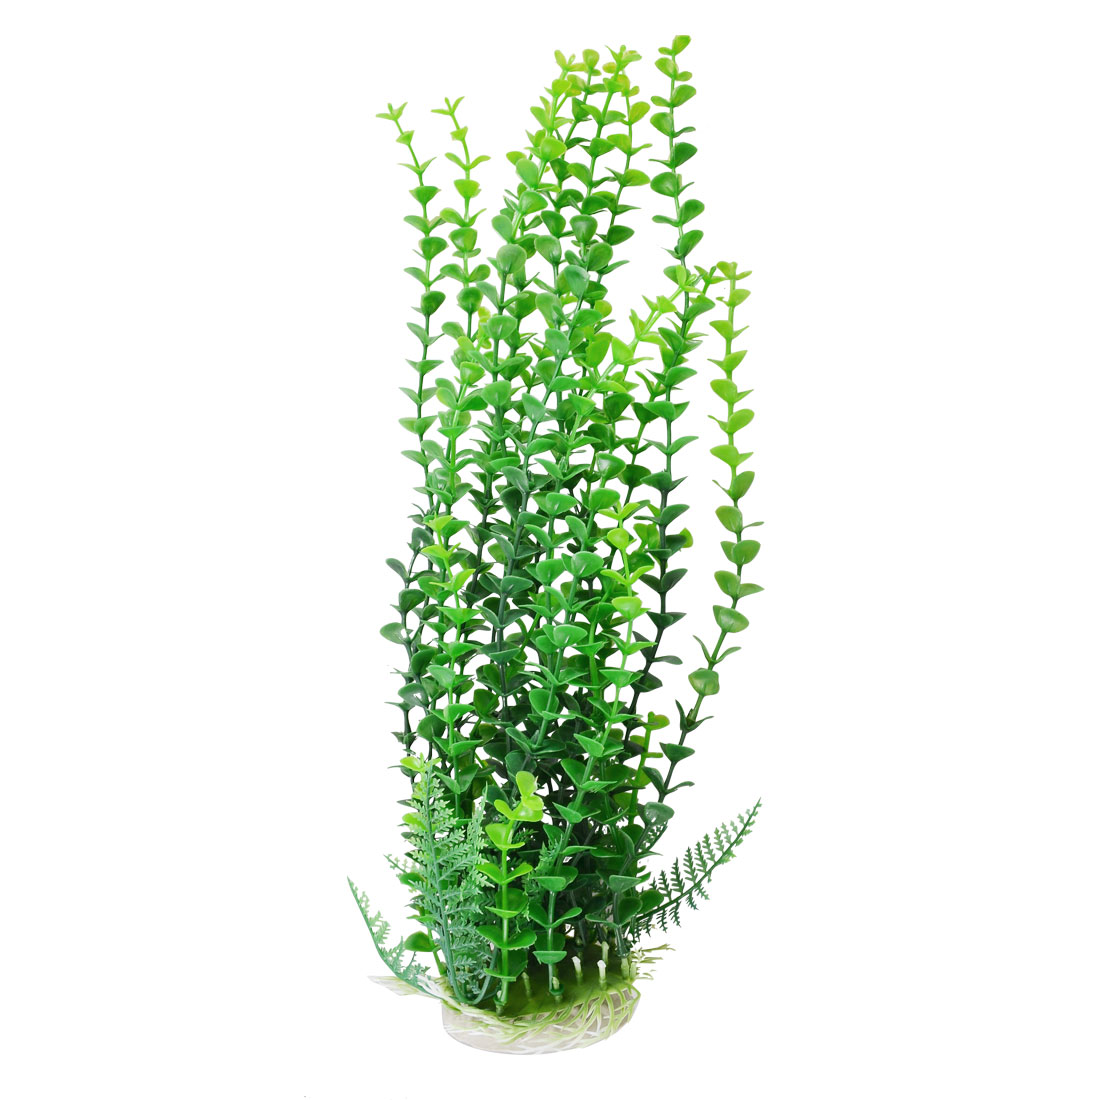 "15.2"" Height Ceramic Base Emulational Plastic Aquarium Plant Green"